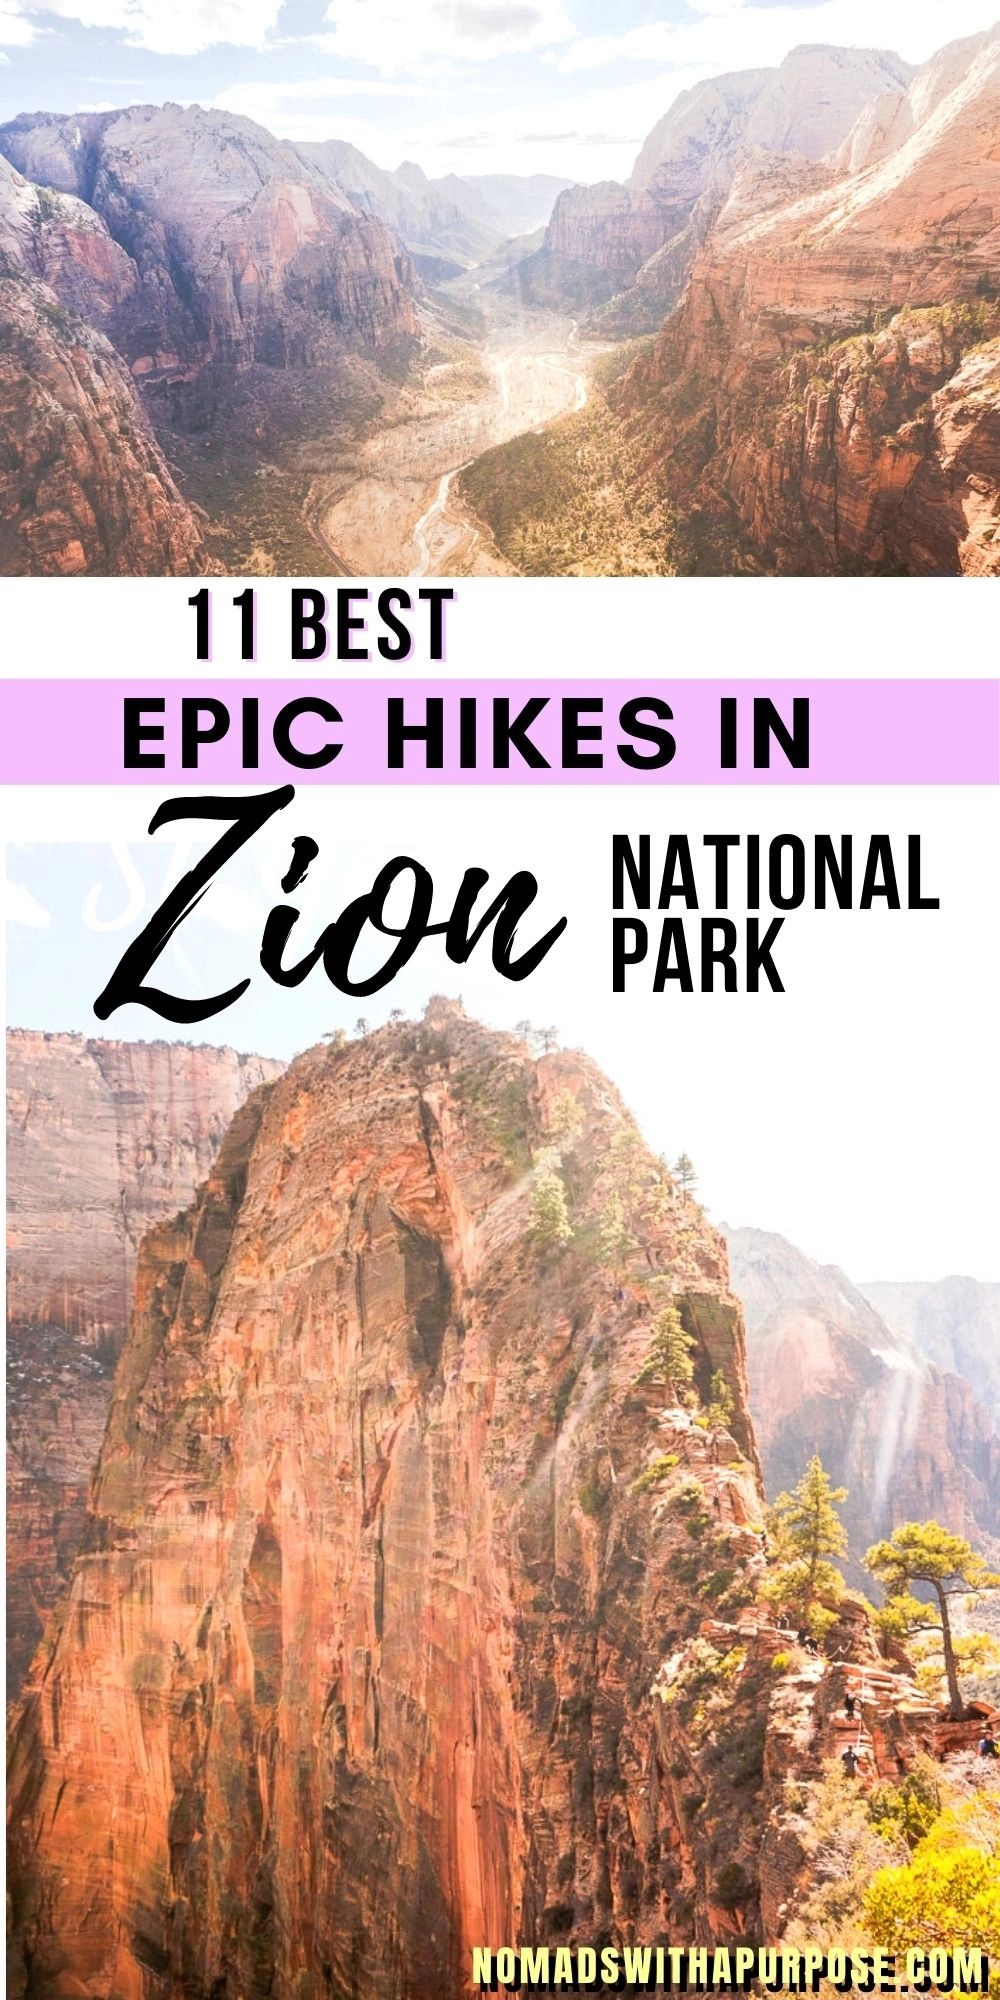 11 Best Epic Hikes in Zion